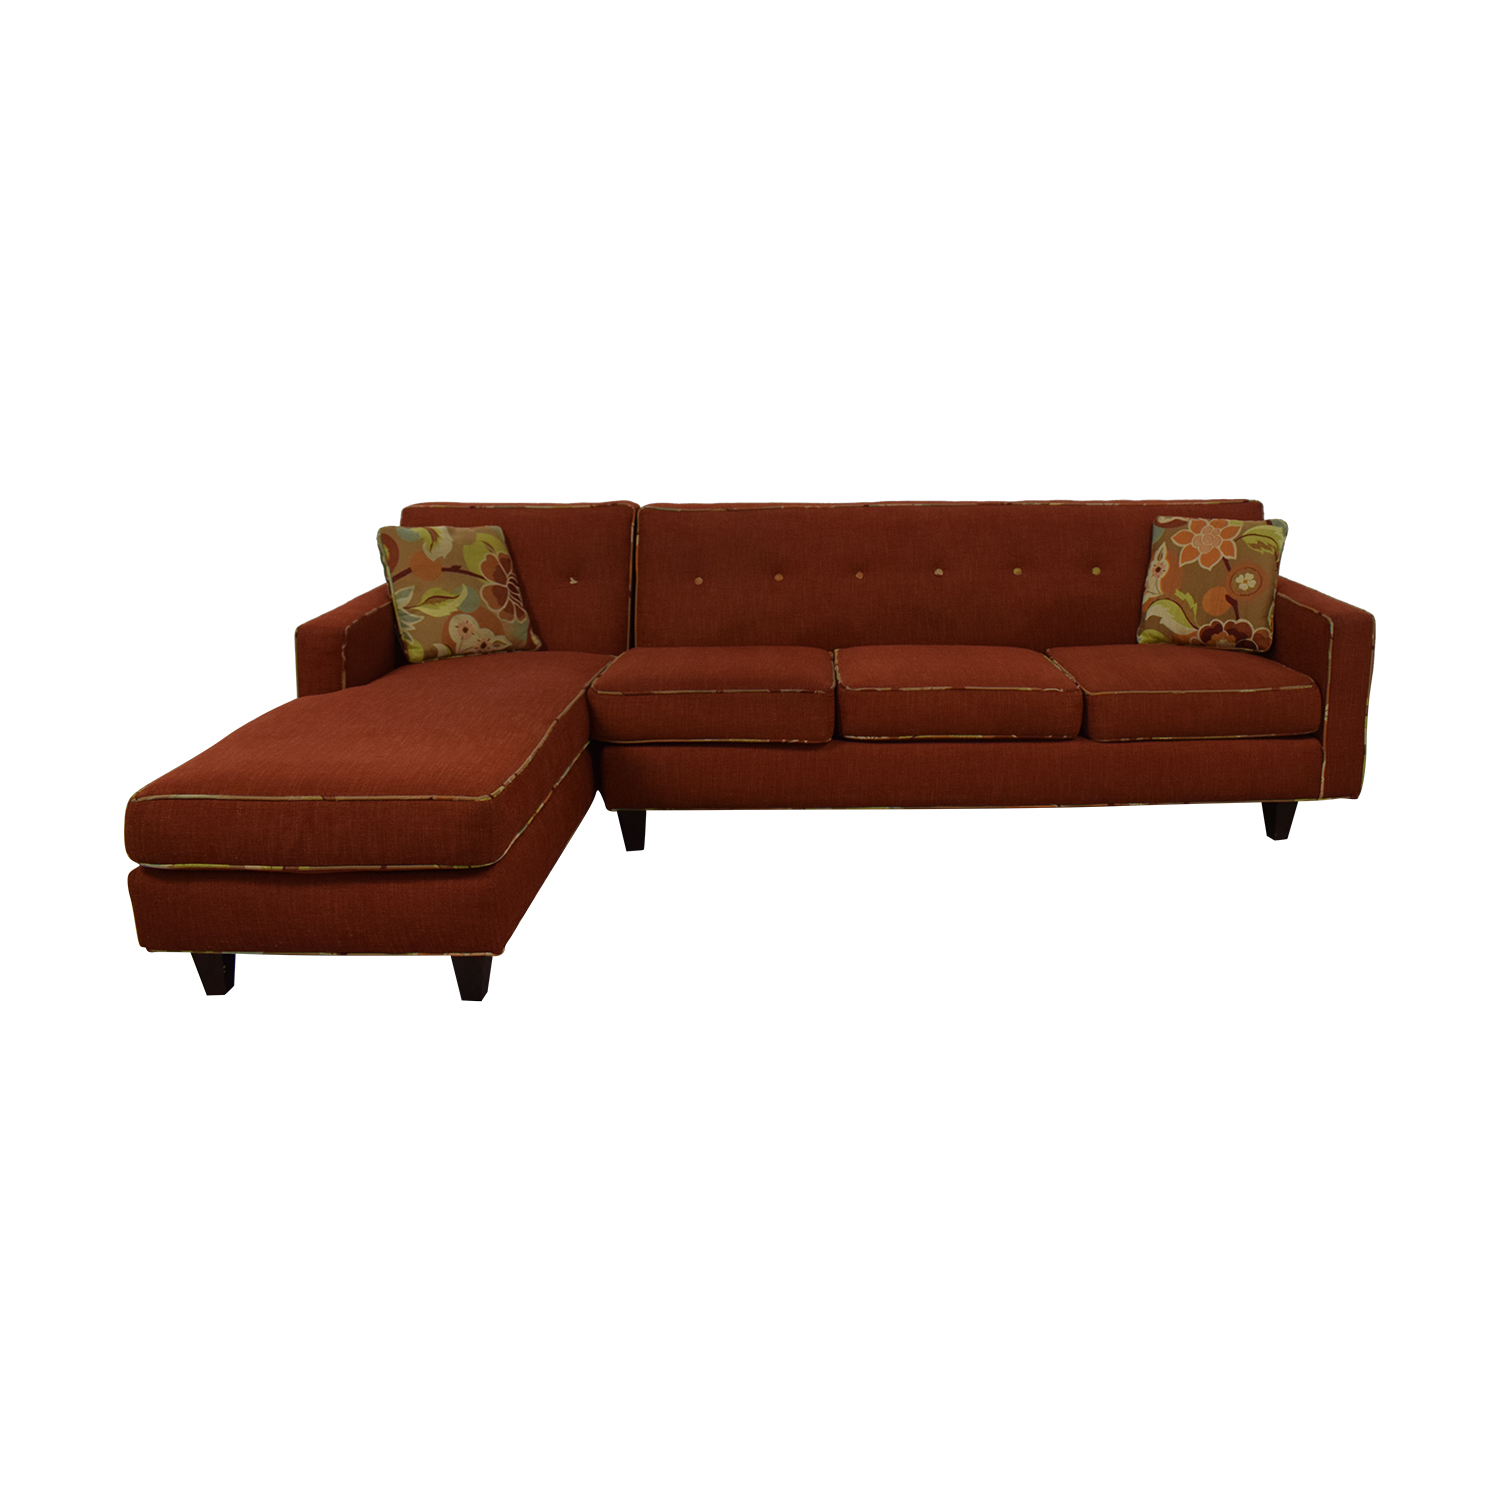 Red Sectional With Chaise and Floral Pillows on sale